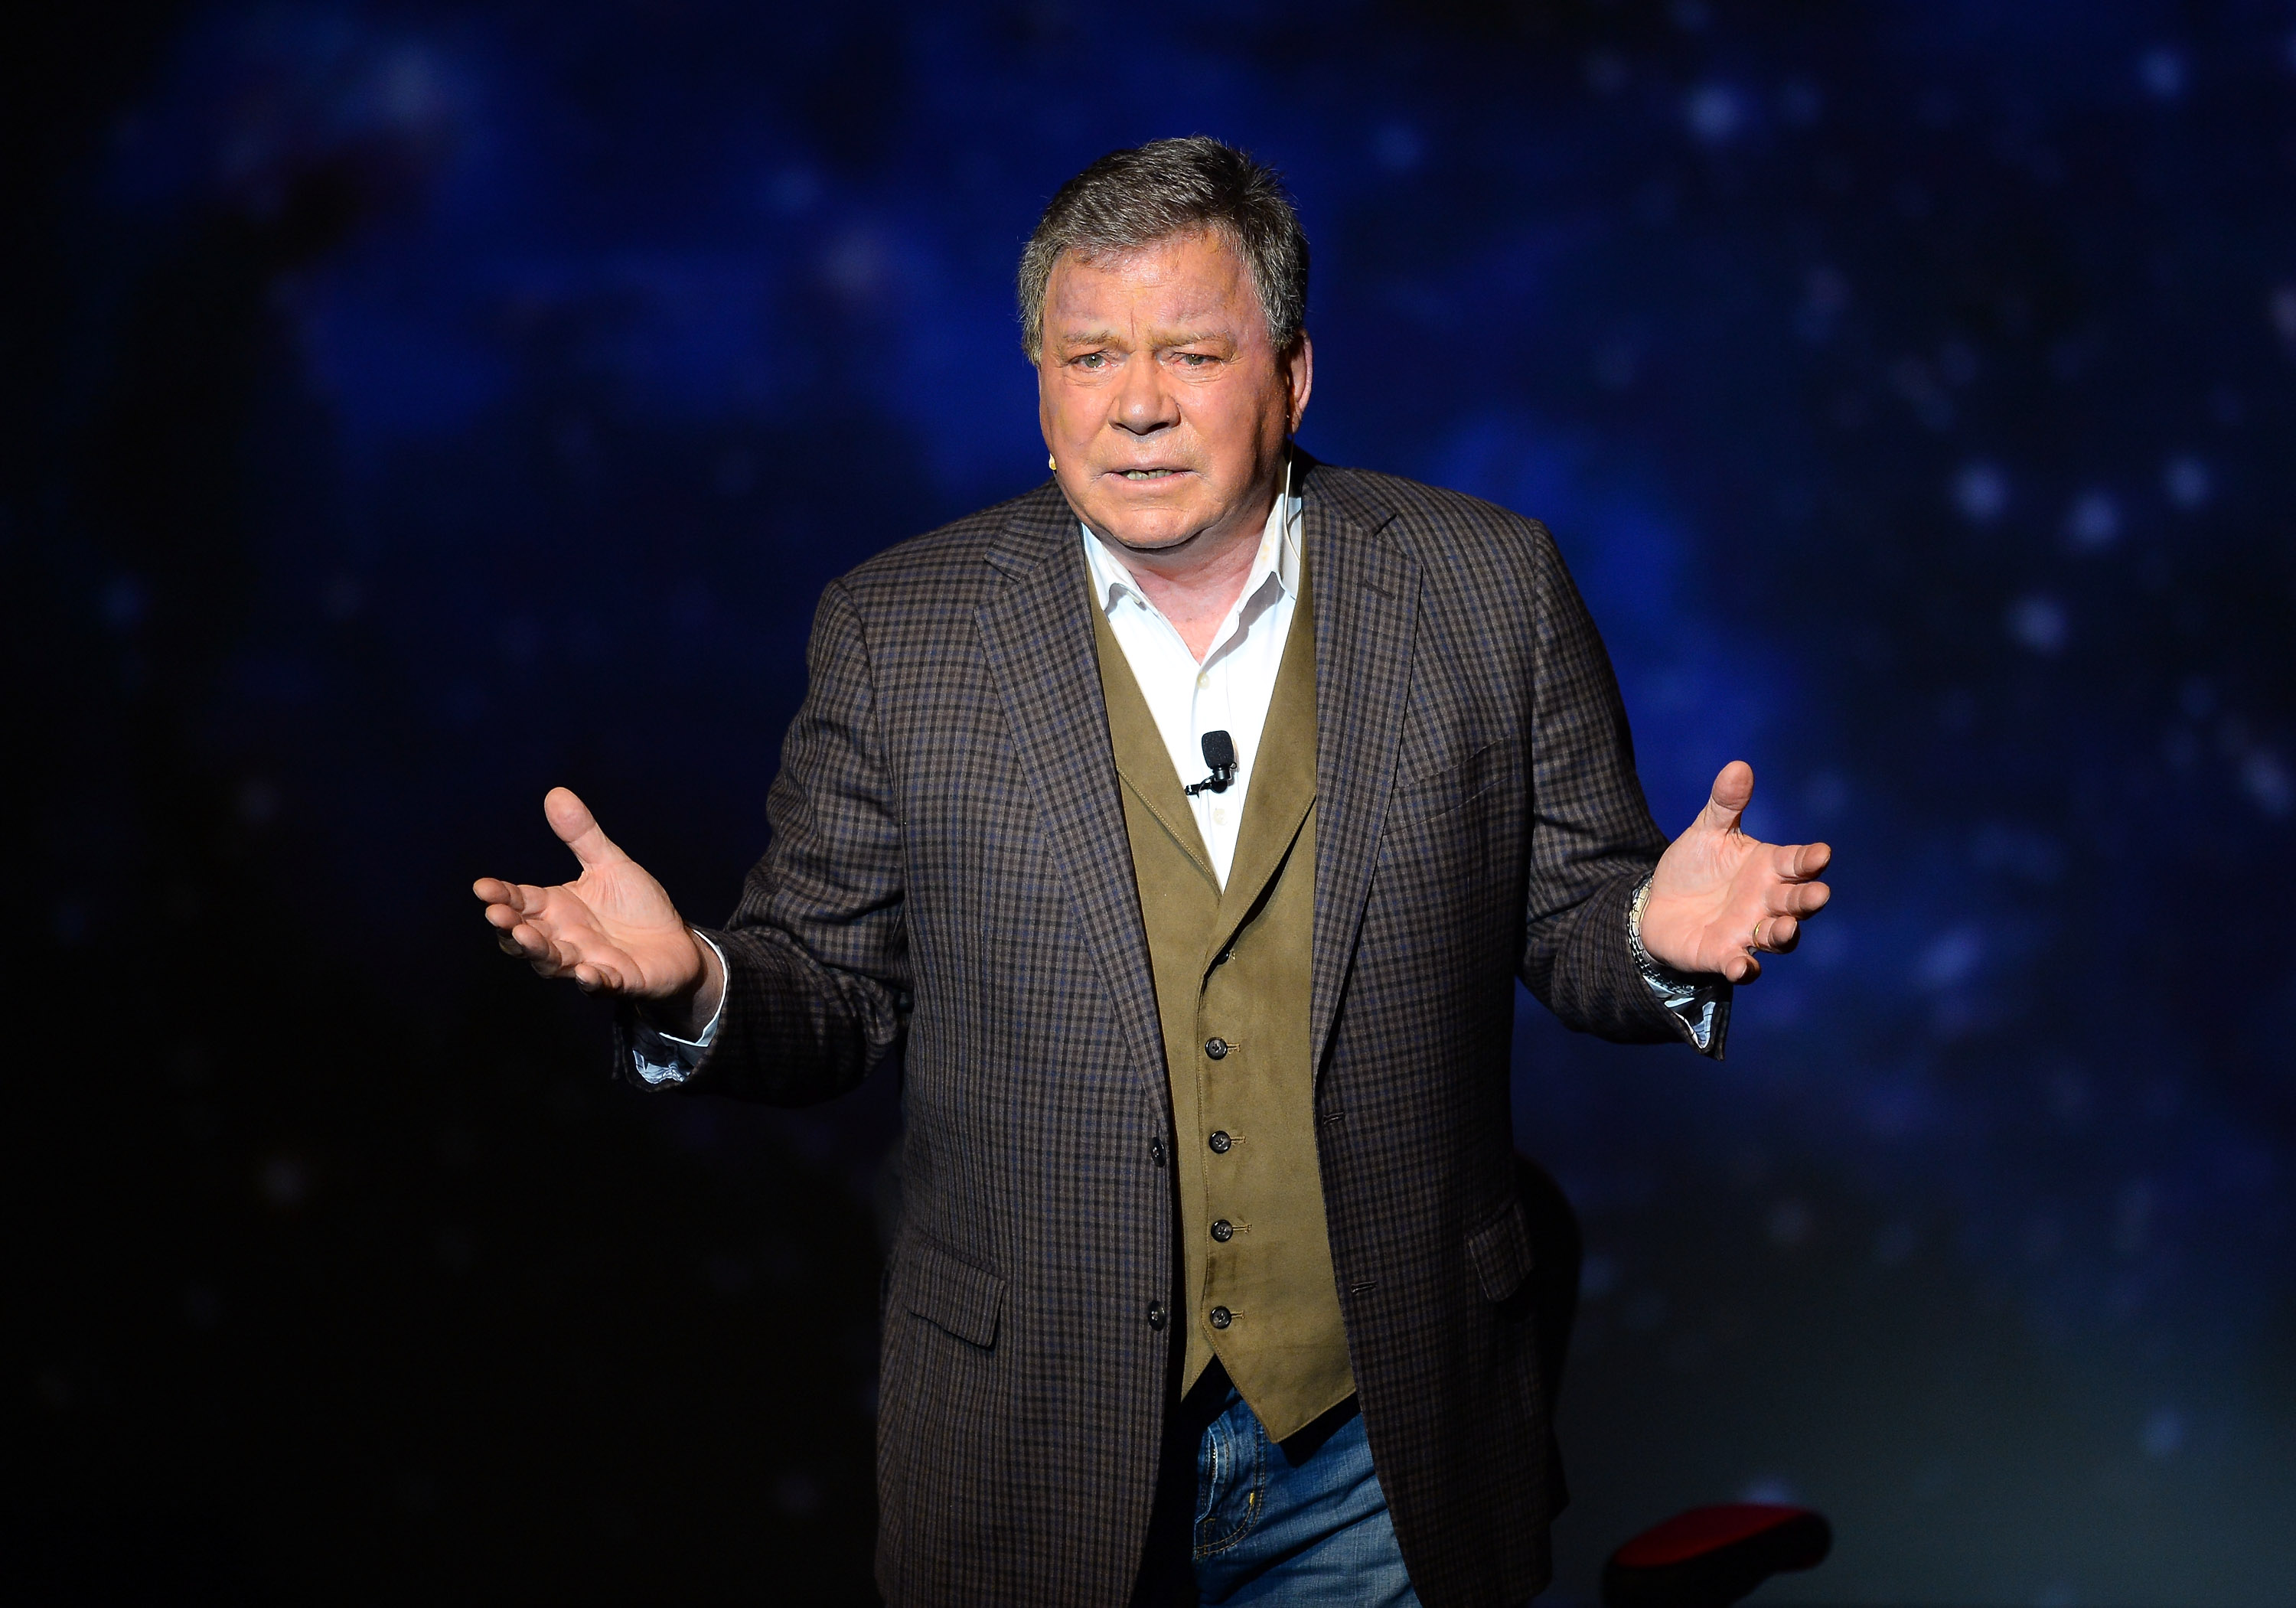 William Shatner performs during his one-man show,  Shatner's World: We Just Live In It,  in Las Vegas, Nevada.